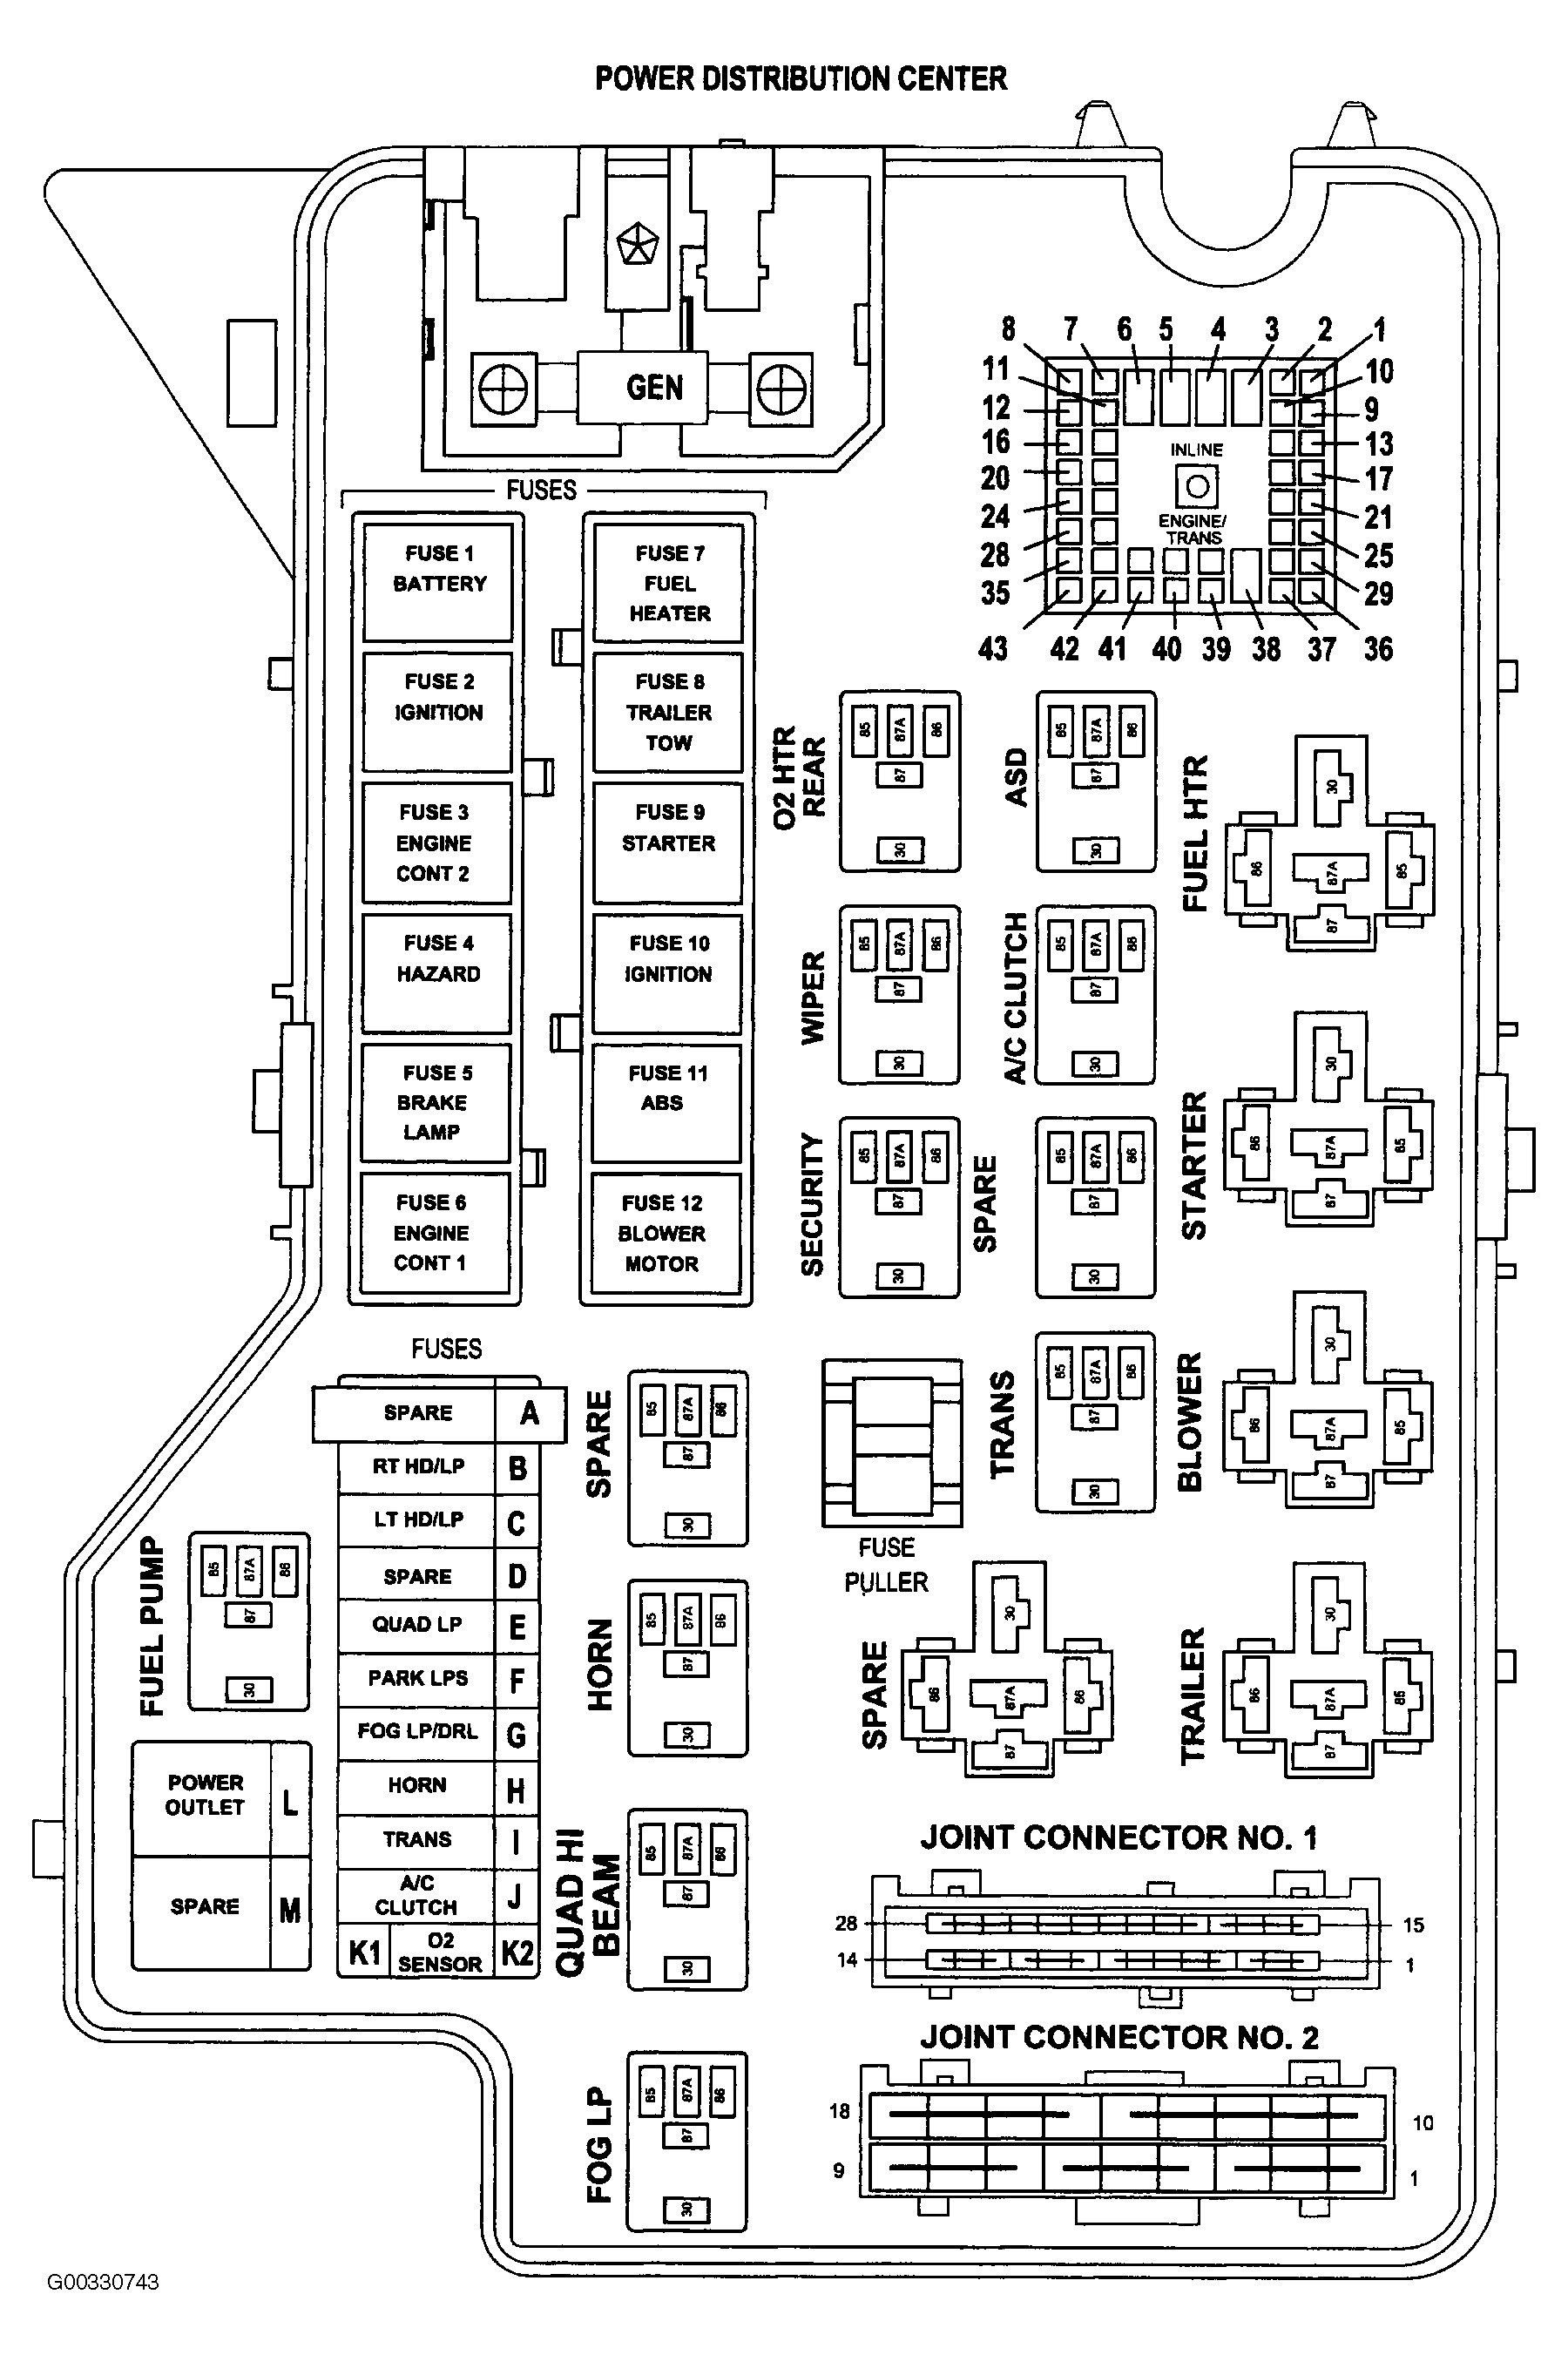 New Dirt Car Wiring Diagram Diagramsample Diagramformats